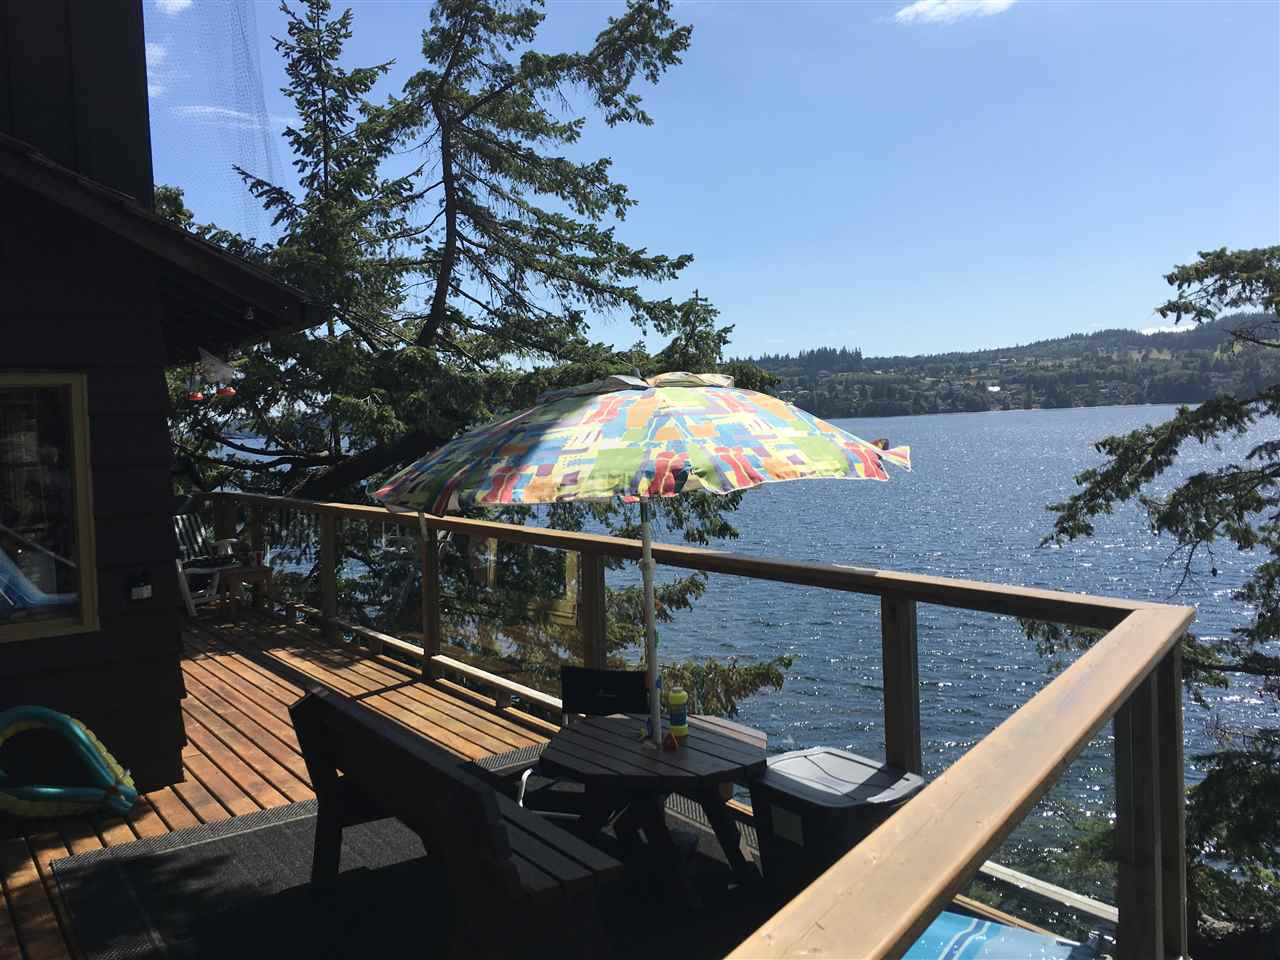 Main Photo: 6075 CORACLE Drive in Sechelt: Sechelt District House for sale (Sunshine Coast)  : MLS®# R2479637